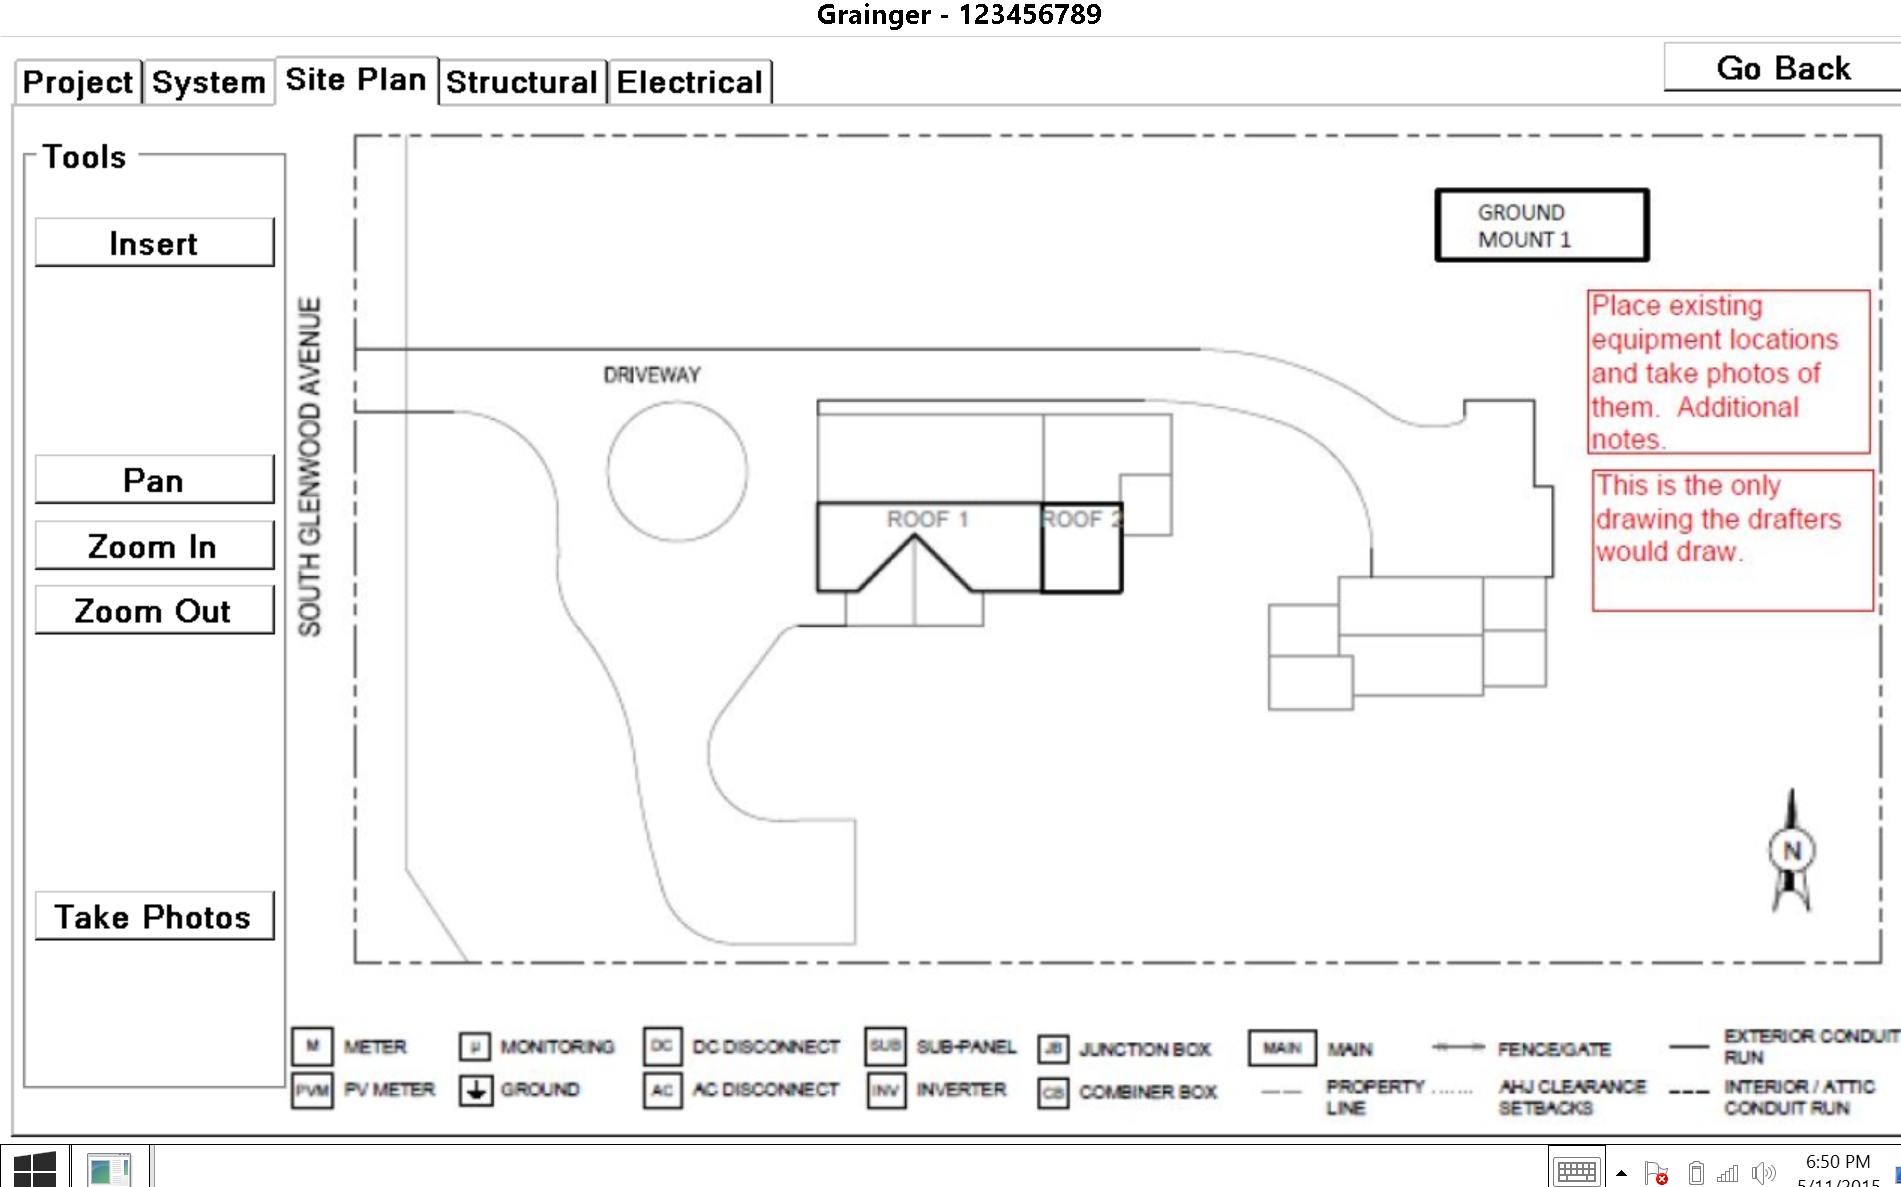 2 Site Visit Form - 3 Site Plan.PNG